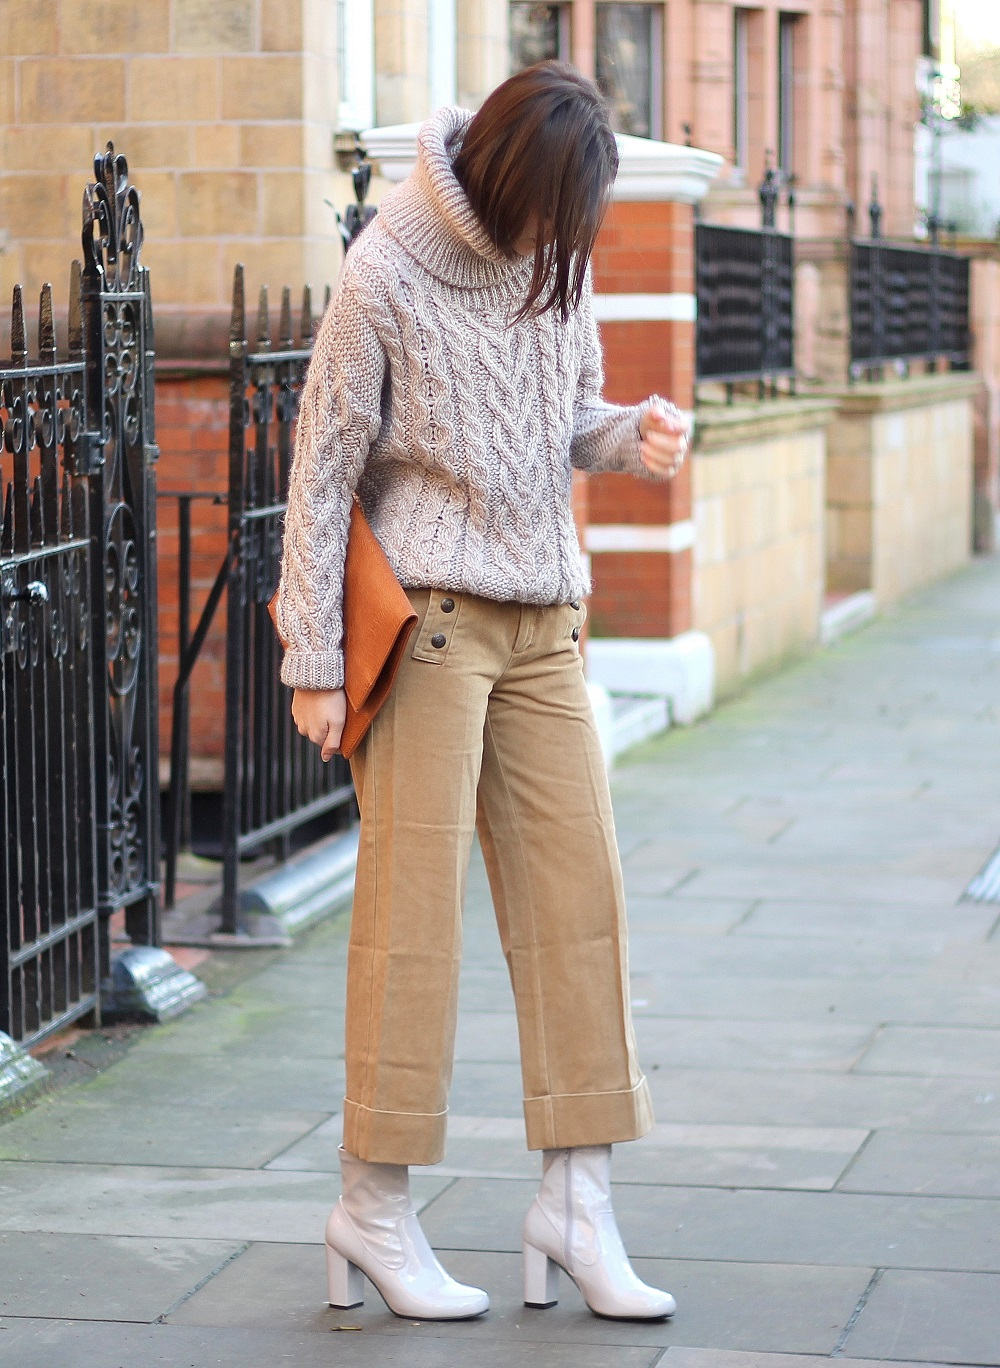 peexo fashion blogger styling neutral outfit